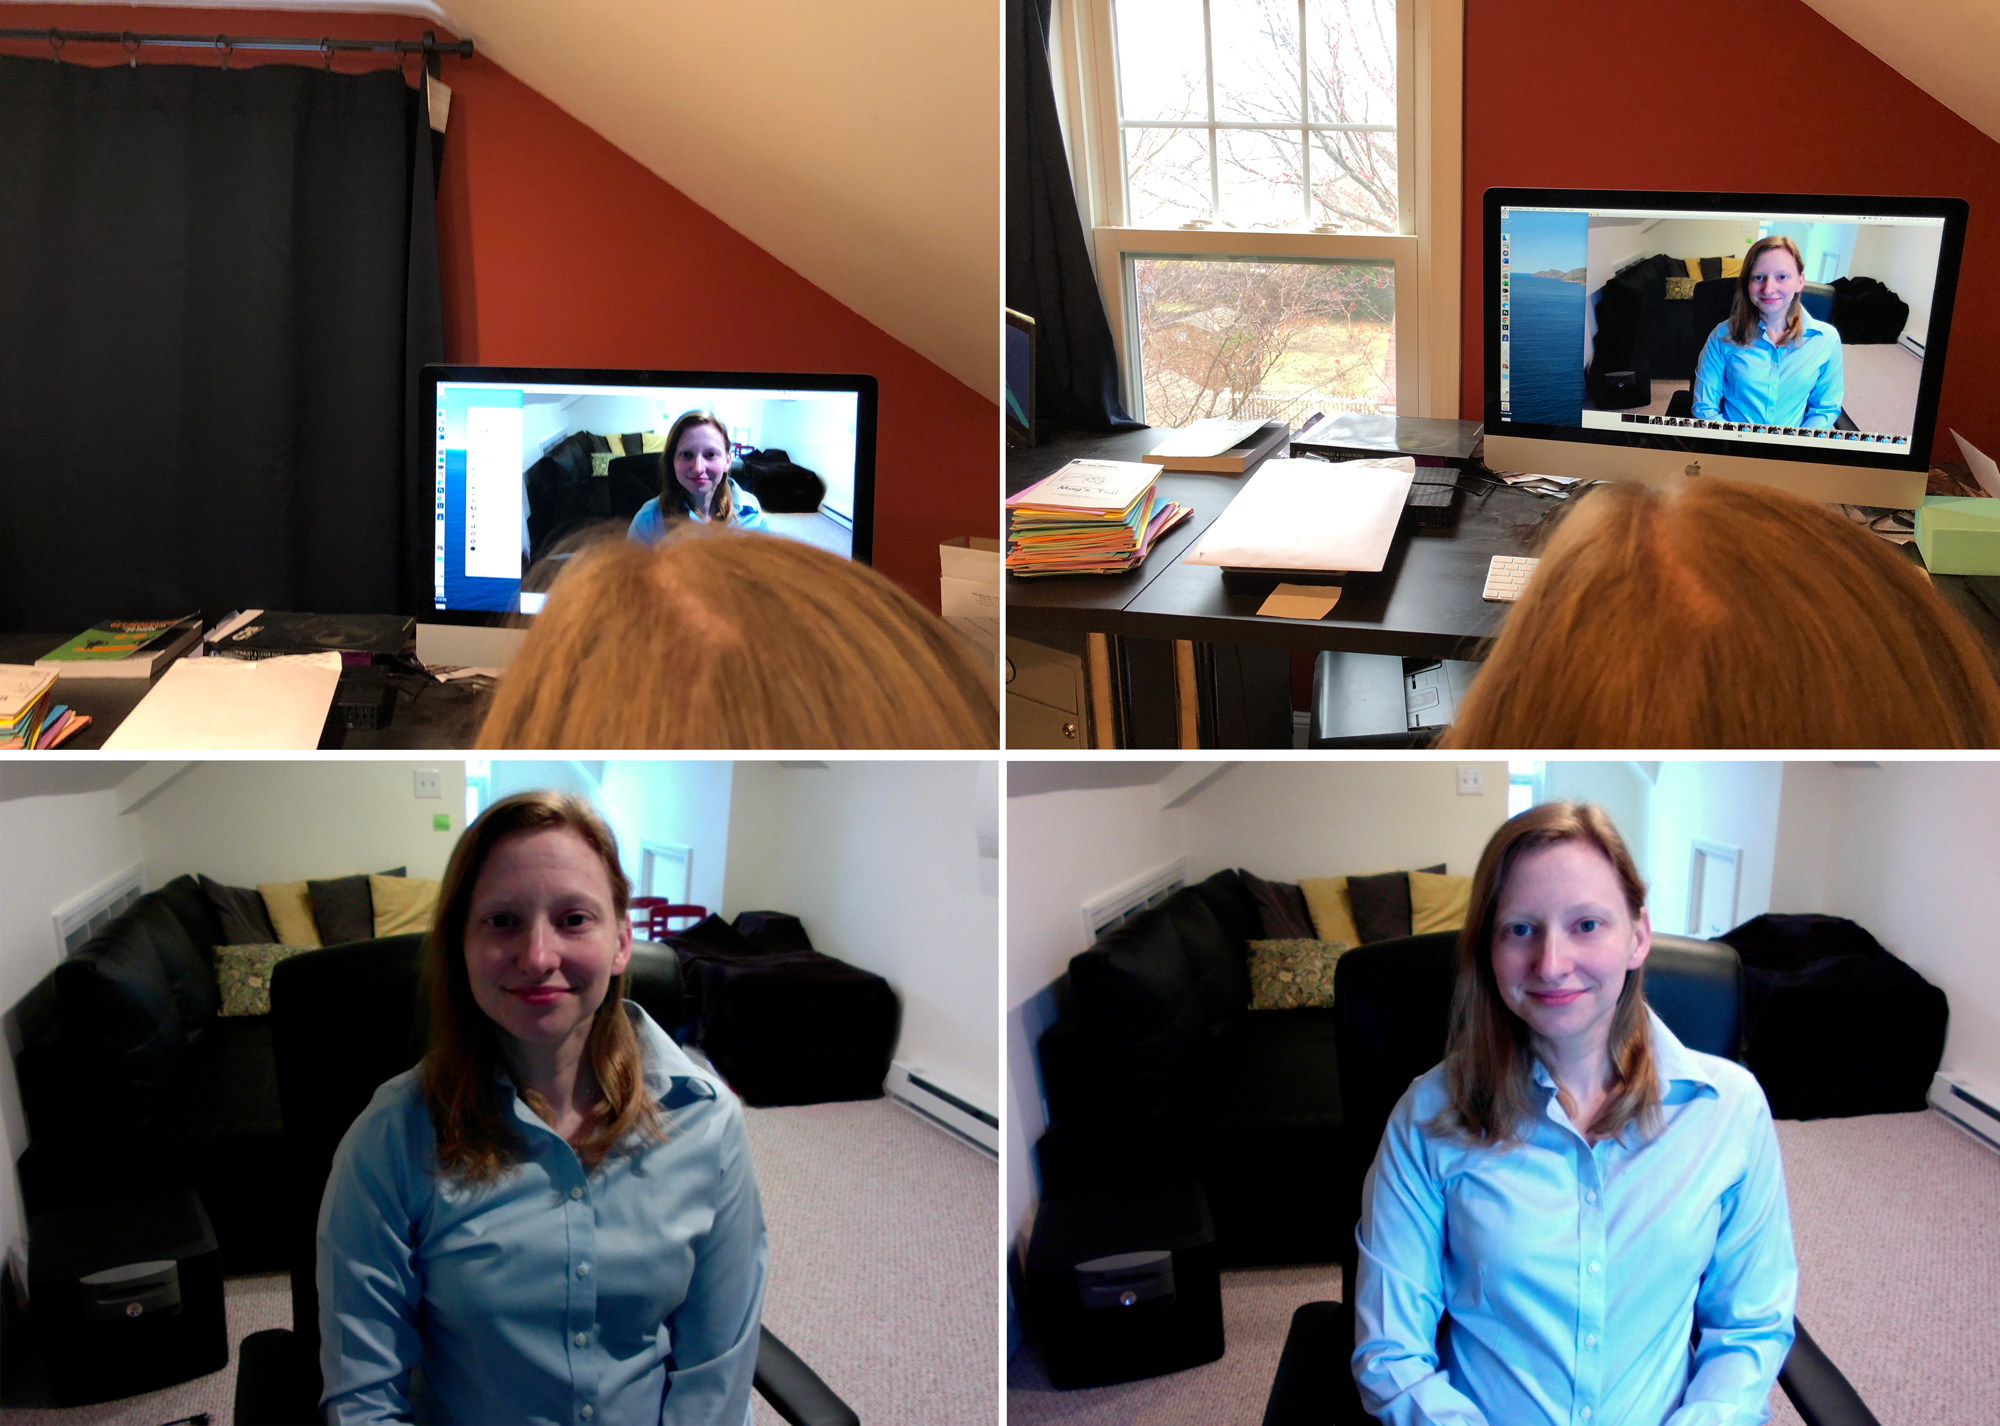 How To Look and Sound Your Best on a Video Conference Call in 5 Minutes or Less